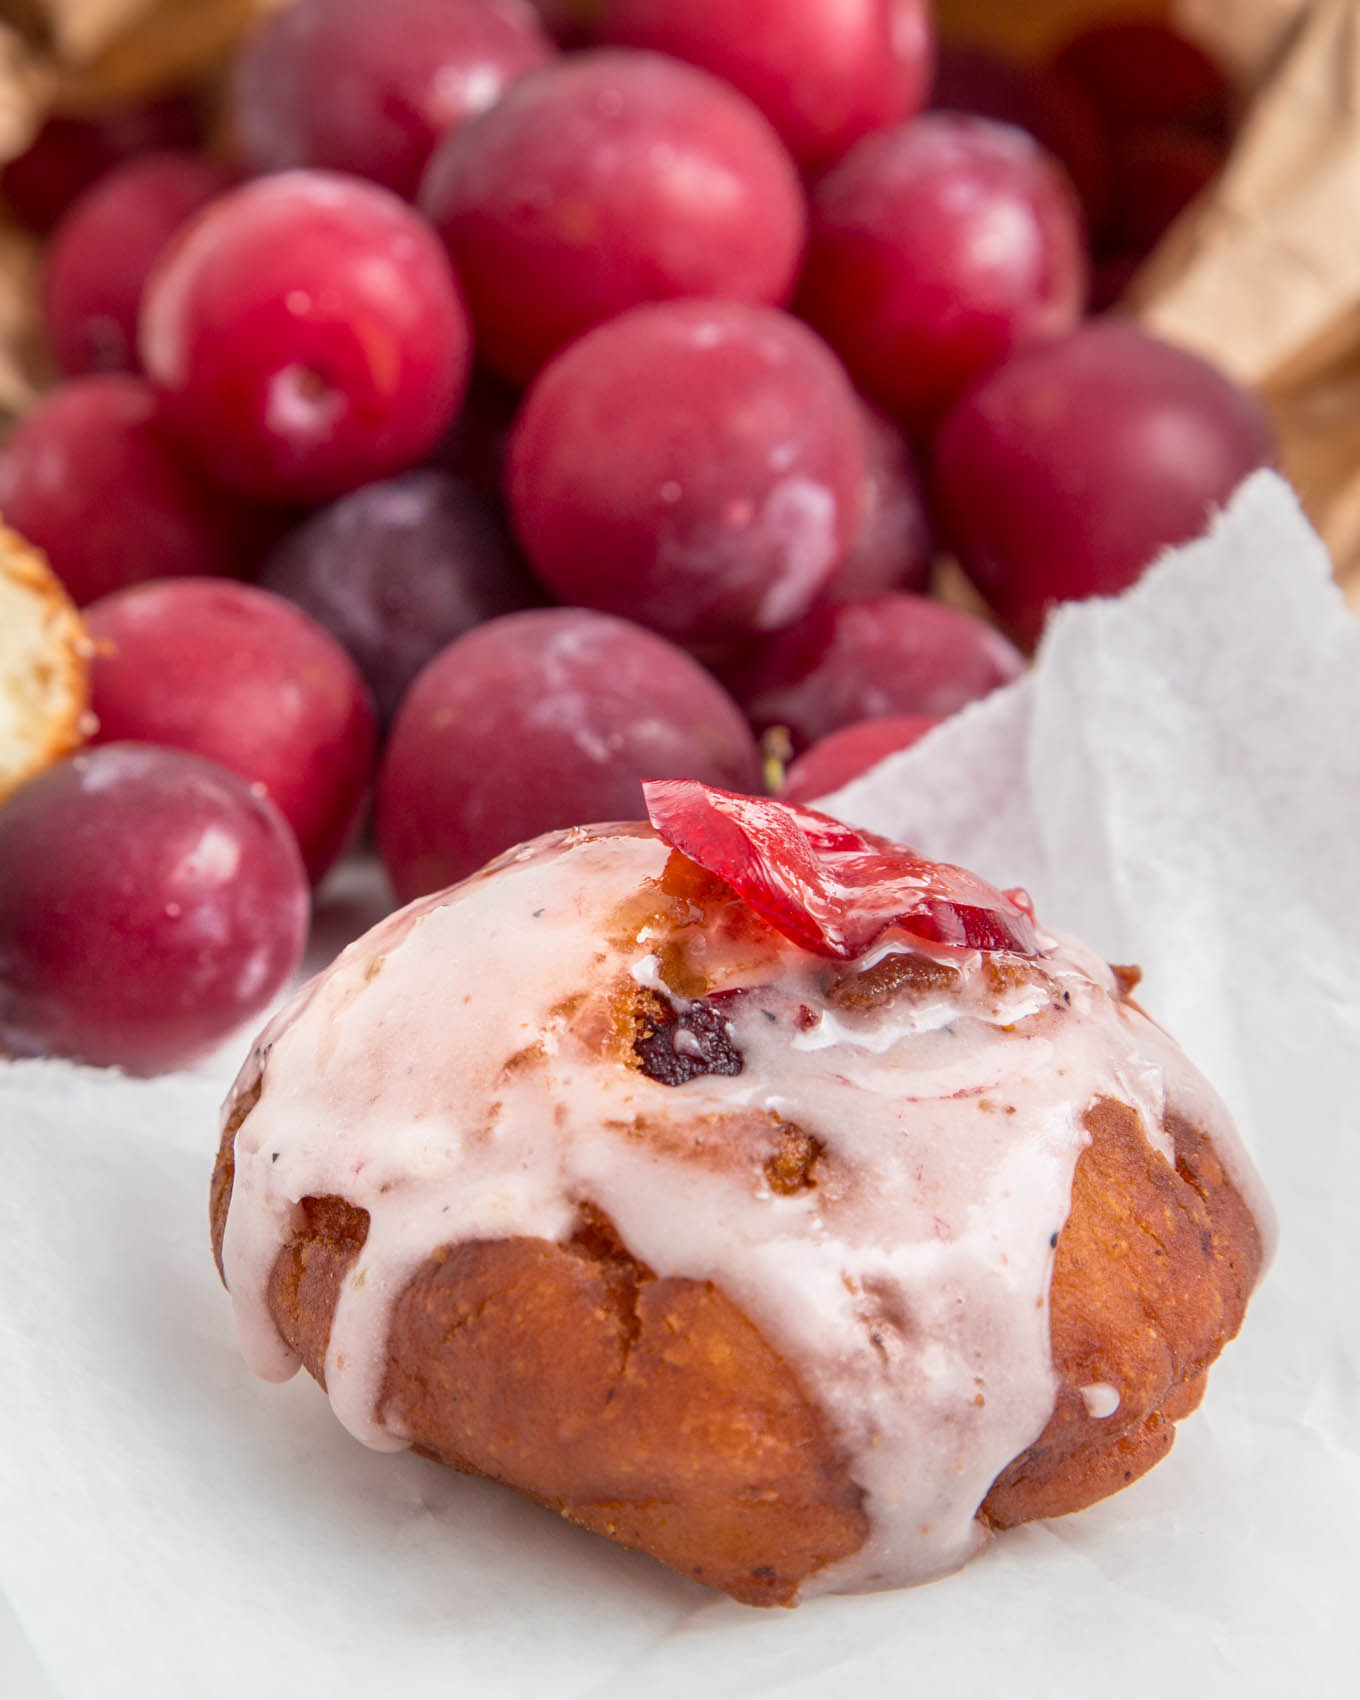 Plum Glazed Cake Donuts from SouthernFATTY.com